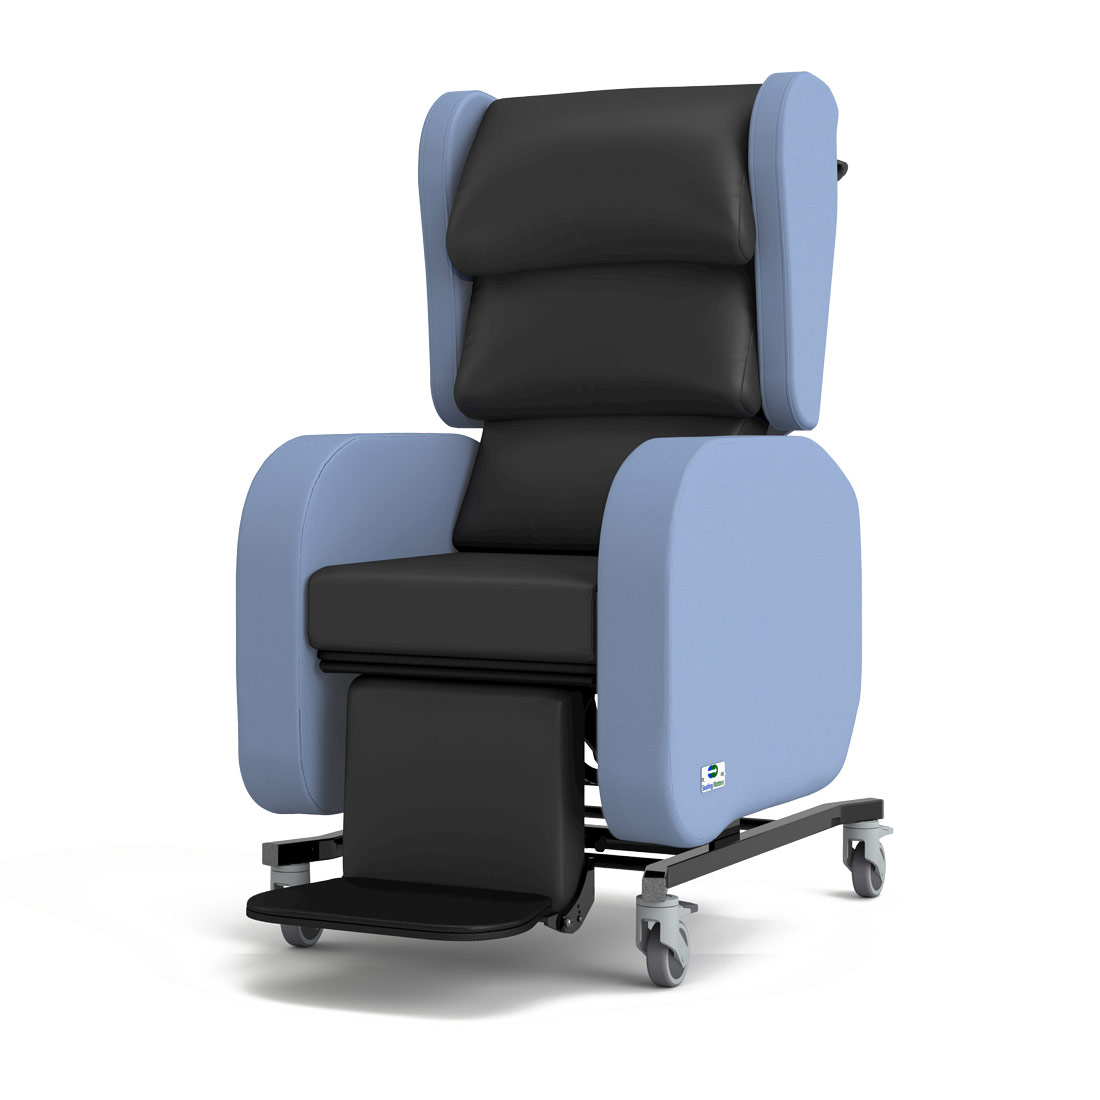 Seating Matters Sorrento tilt therapeutic seating